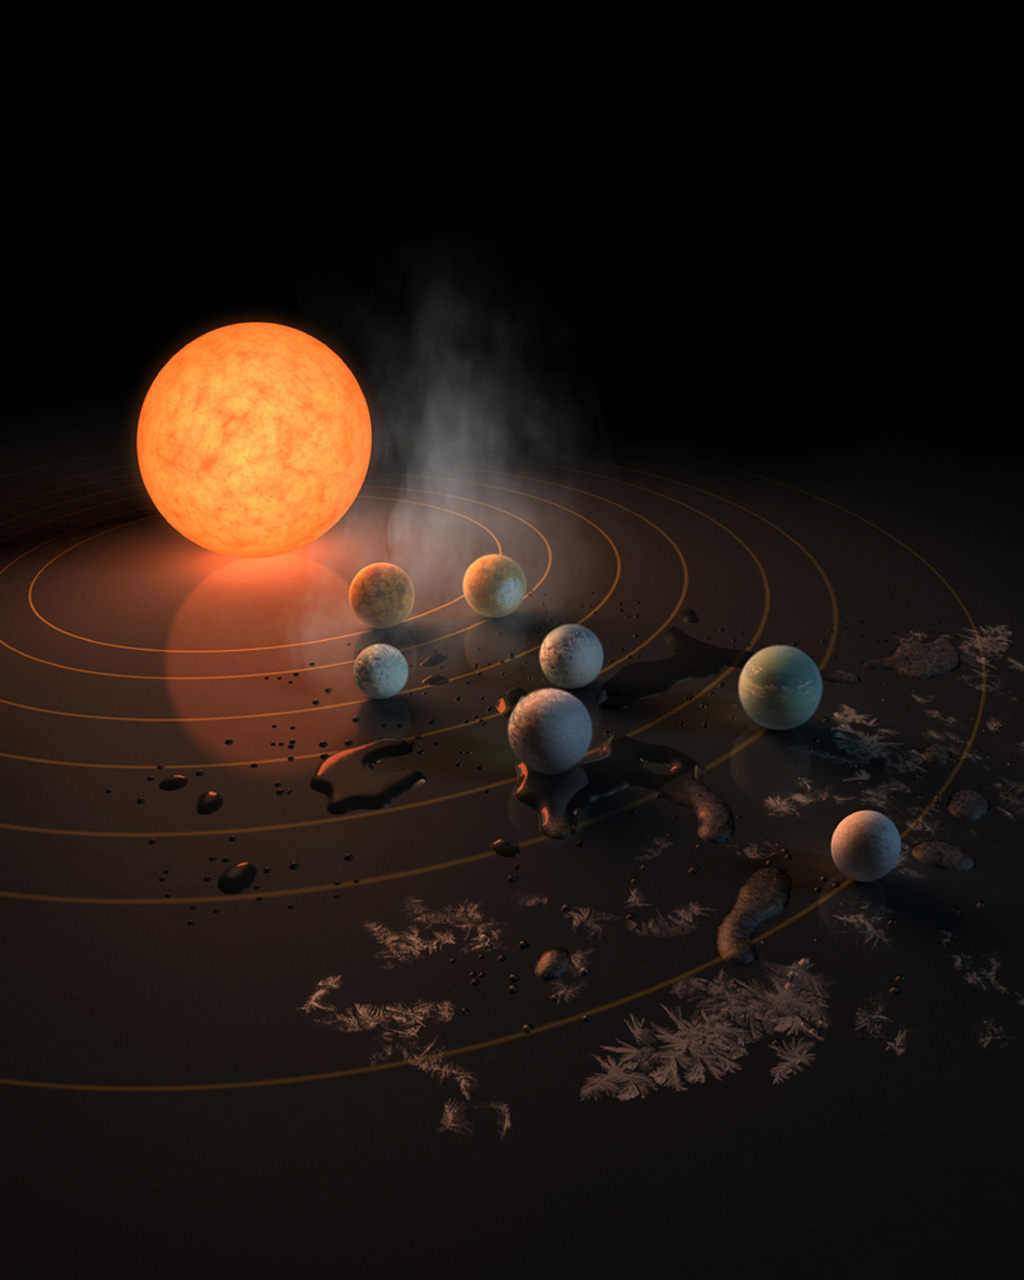 The TRAPPIST-1 star, an ultra-cool dwarf, has seven Earth-size planets orbiting it. This artist's concept appeared on the cover of the journal Nature in Feb. 23, 2017 announcing new results about the system.